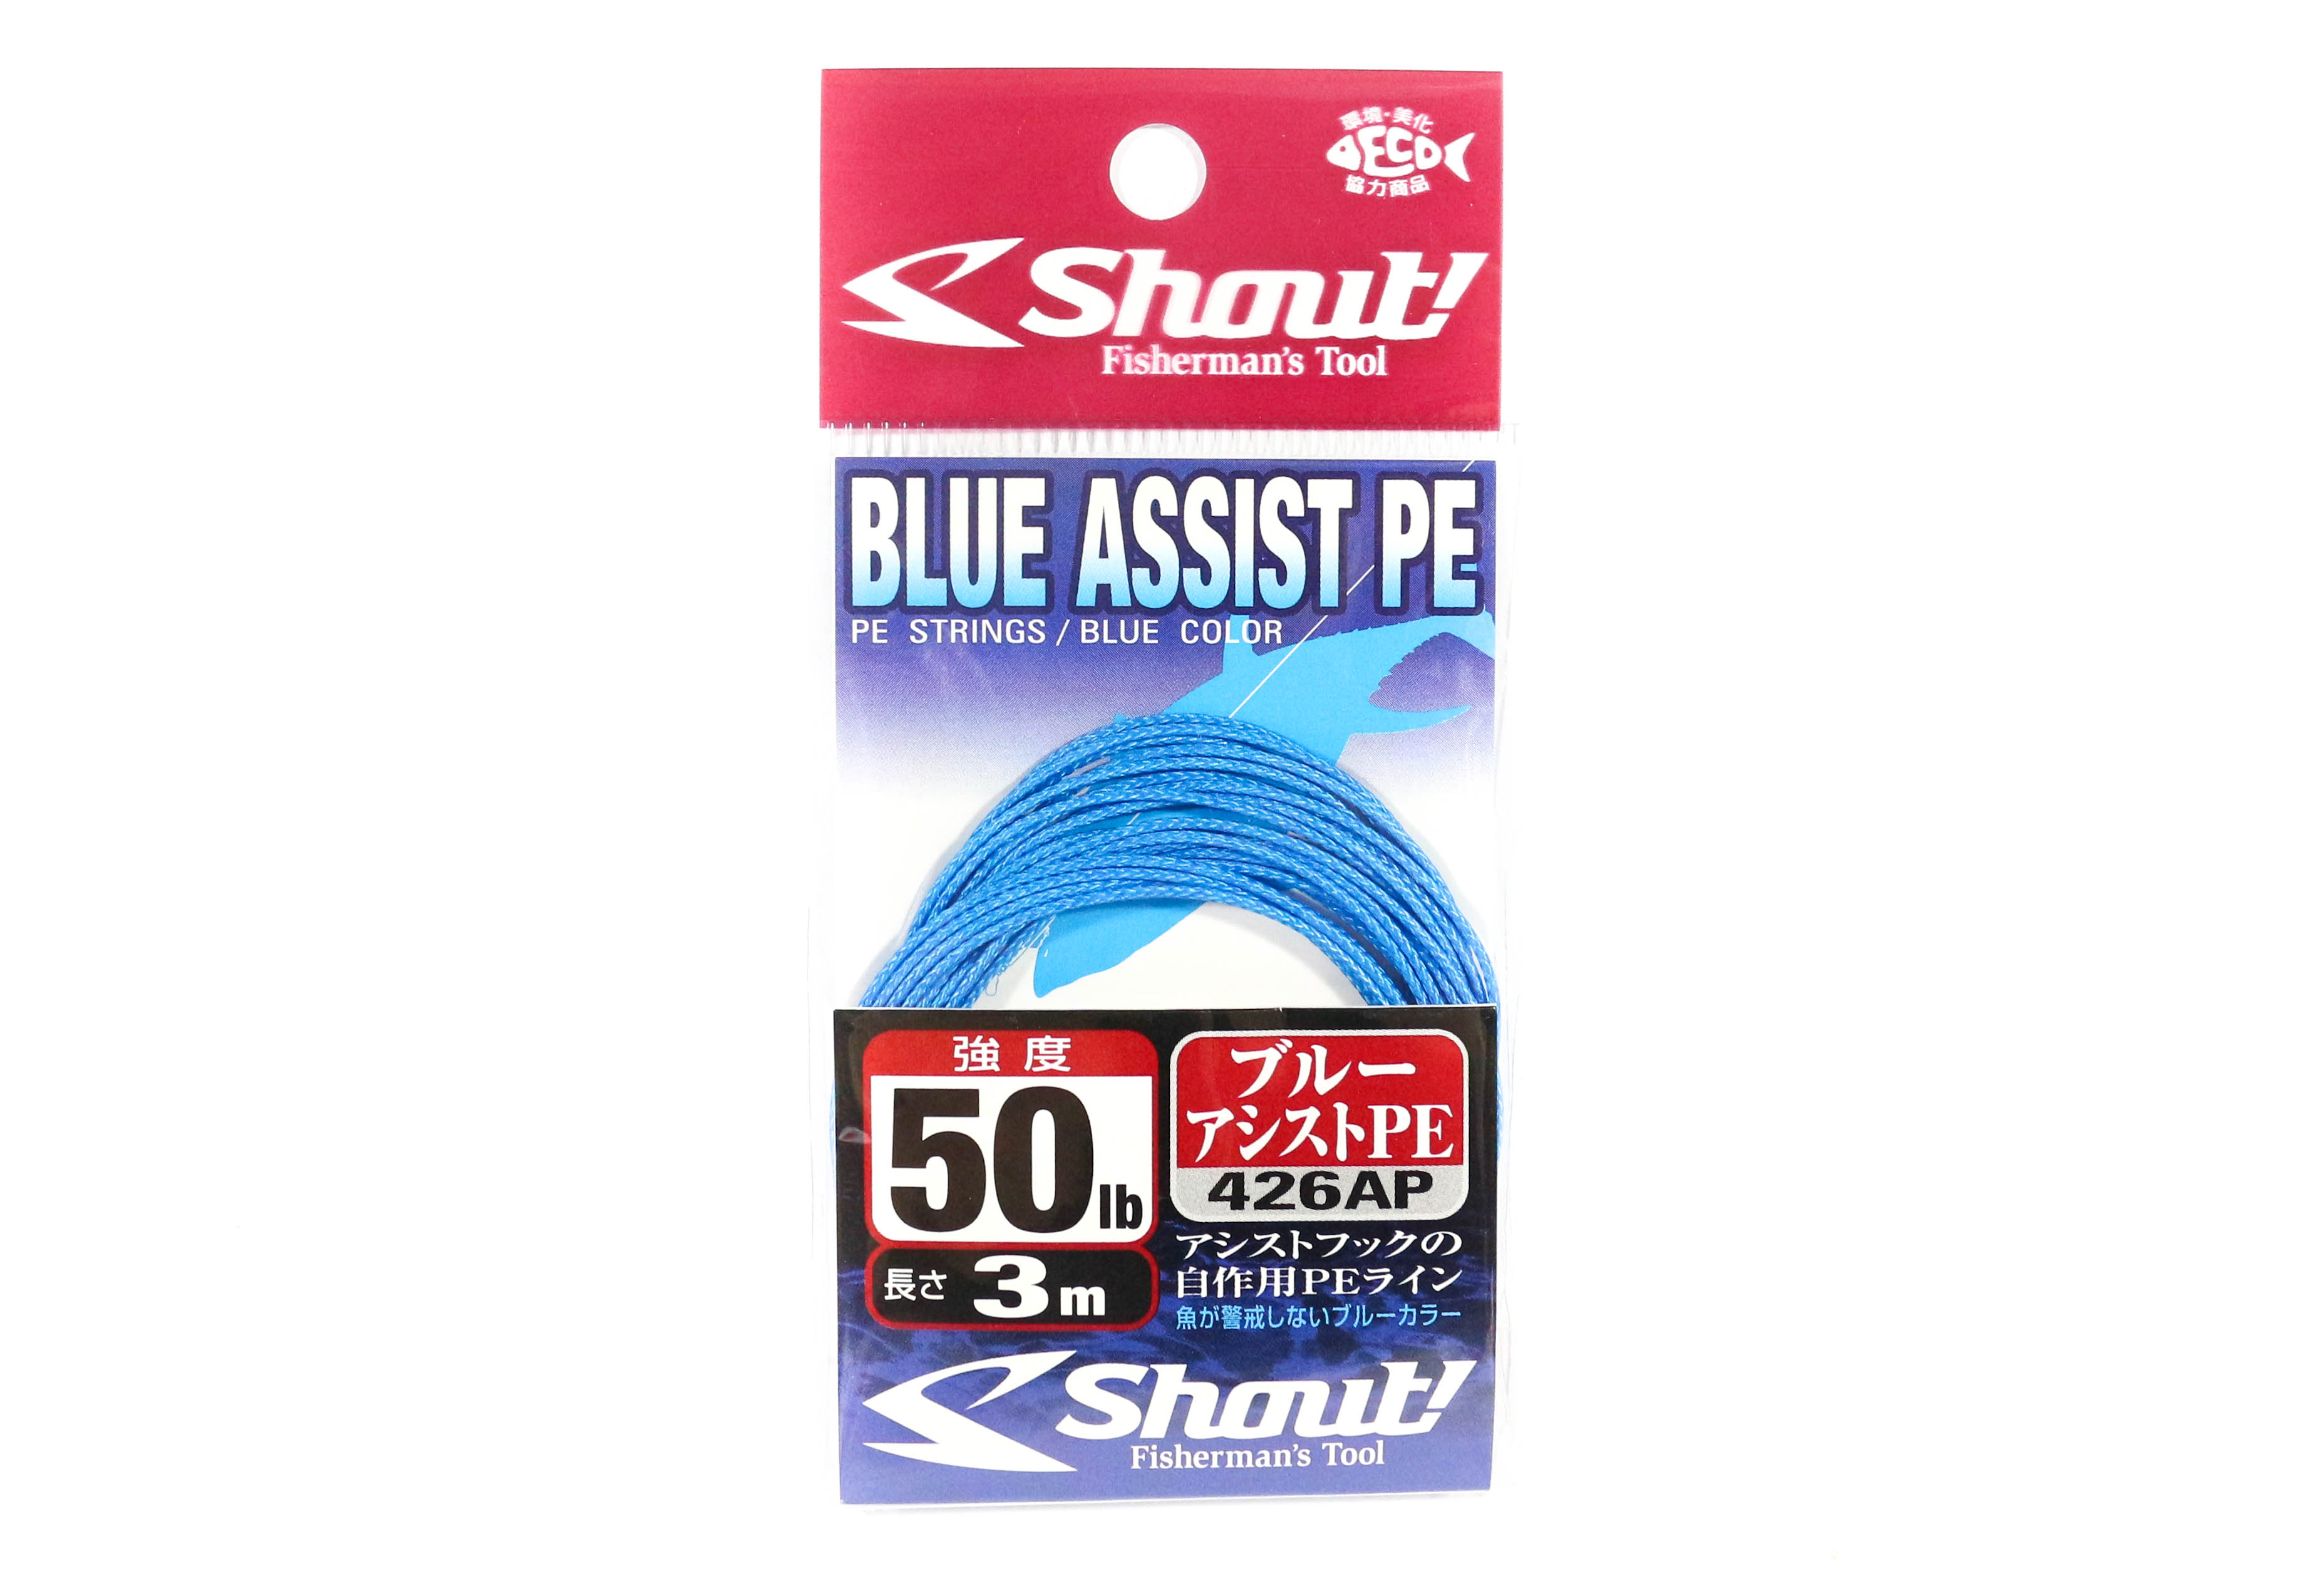 Shout 426-AP Blue Assist P.E Line Assist Rope Inner Core 3 meters 50LB (4633)